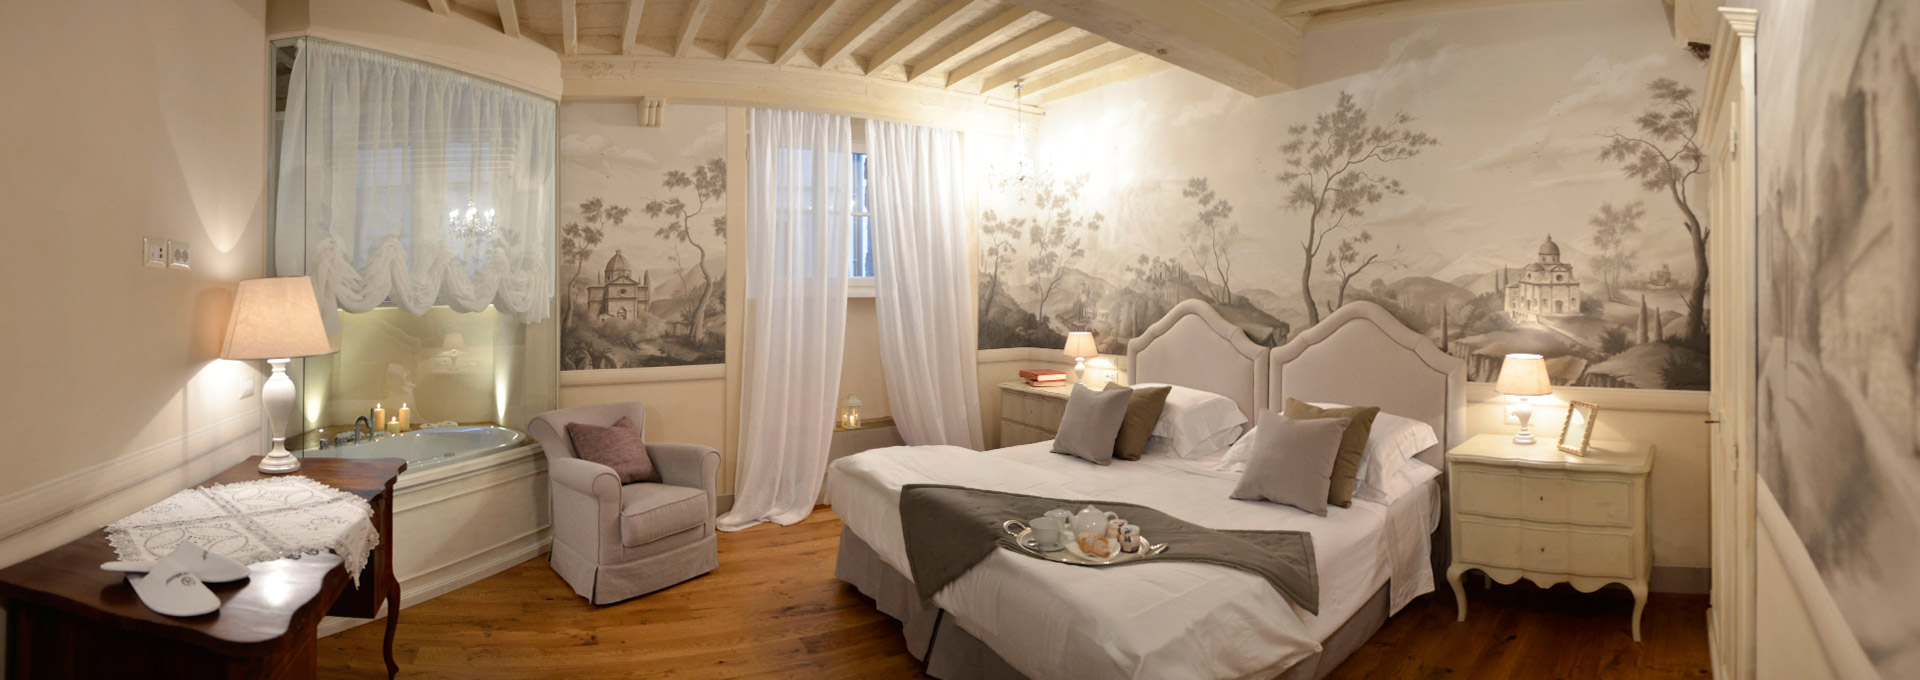 Luxury suites in cortona tuscany italy where to sleep for Italy b b